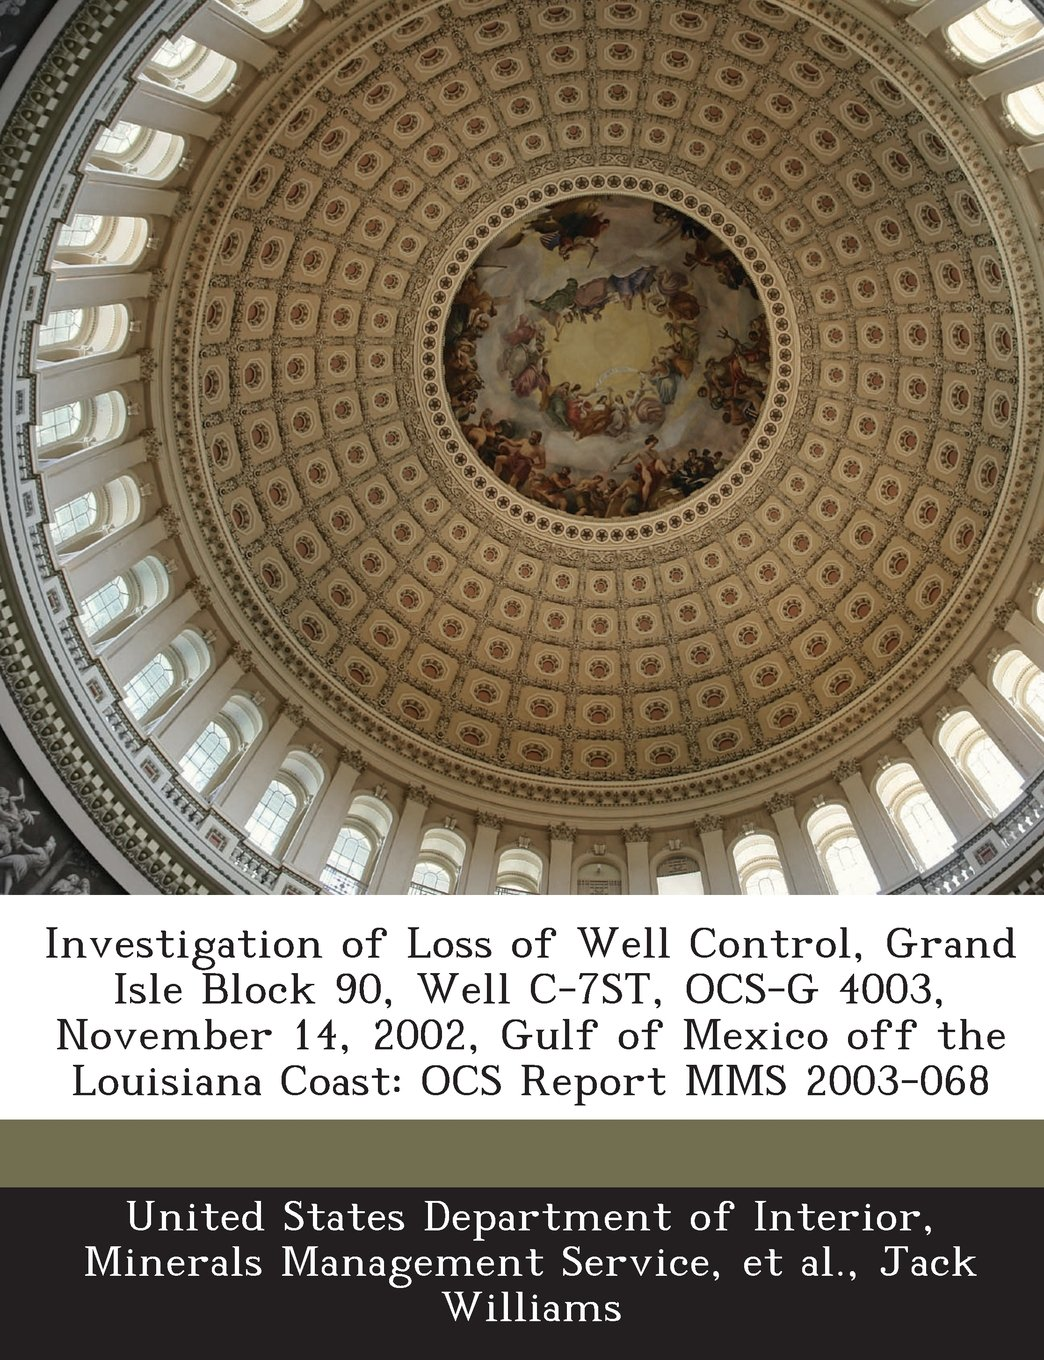 Investigation of Loss of Well Control, Grand Isle Block 90, Well C-7ST, OCS-G 4003, November 14, 2002, Gulf of Mexico off the Louisiana Coast: OCS Report MMS 2003-068 PDF